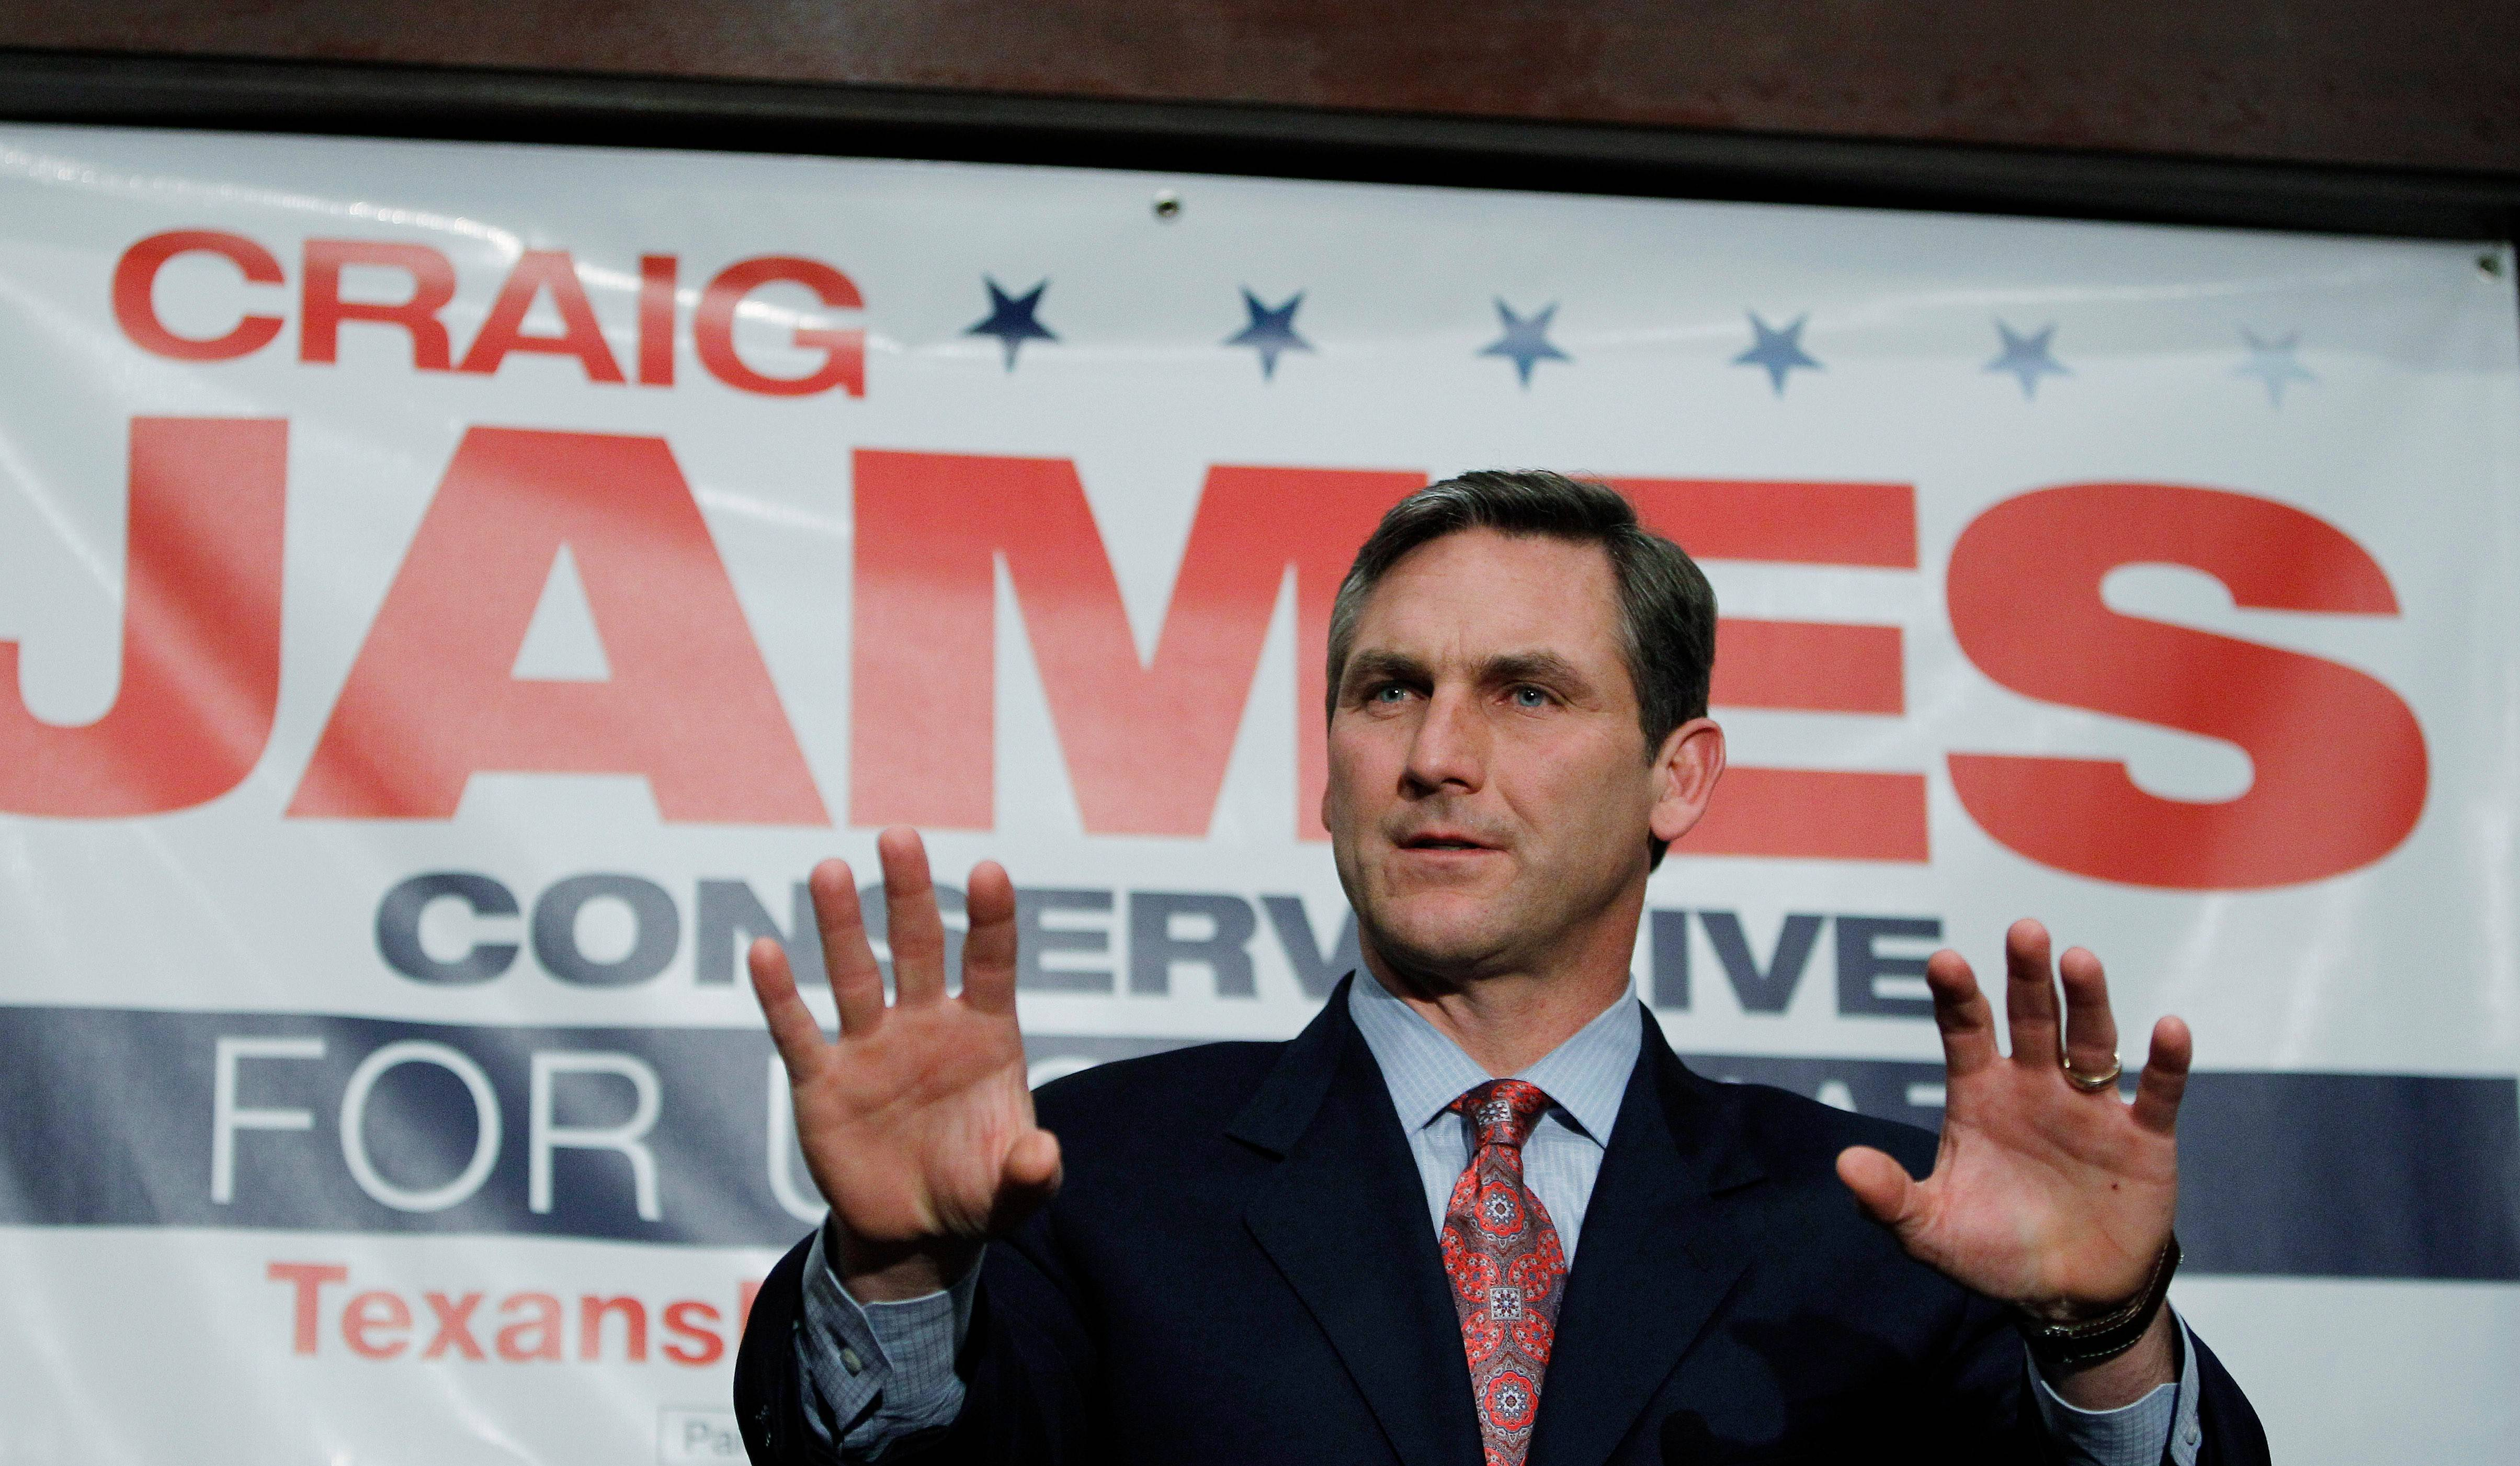 Former sports commentator Craig James unsuccessfully ran for Senate in 2012. Now he has joined the conservative Family Research Council.